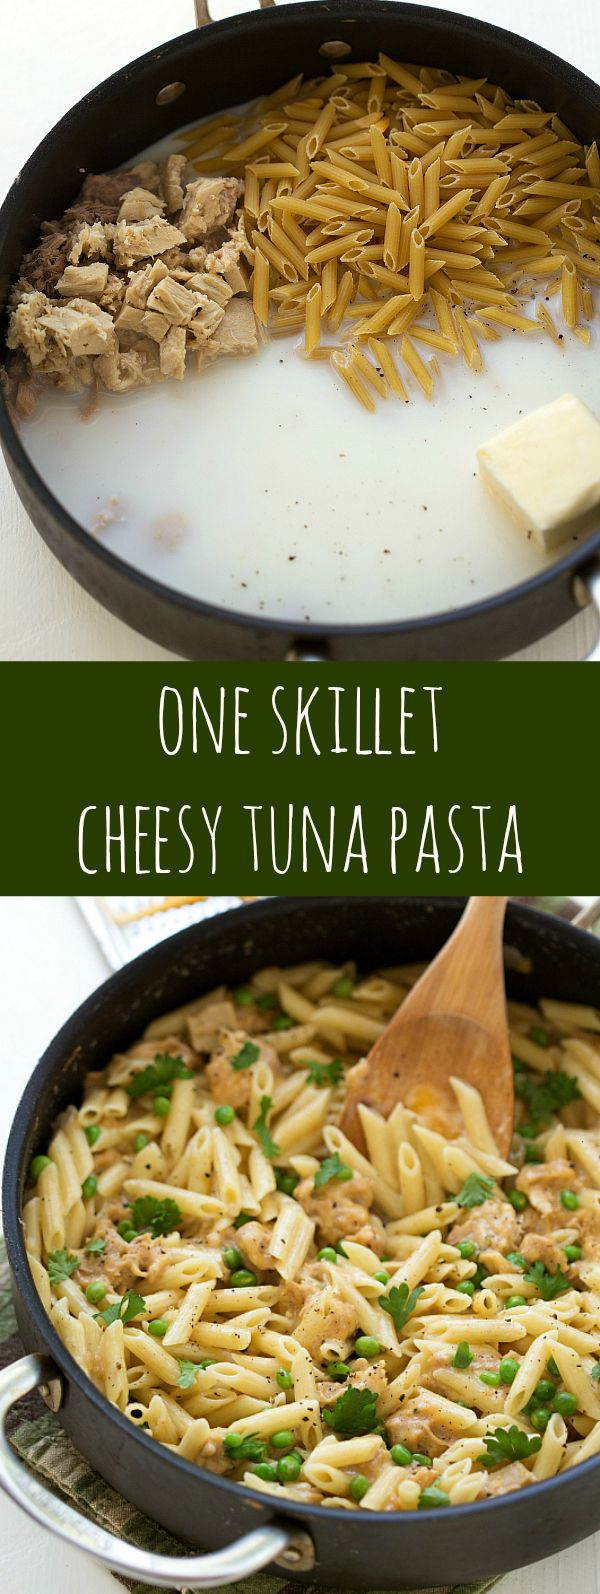 One Skillet Cheesy Tuna Pasta